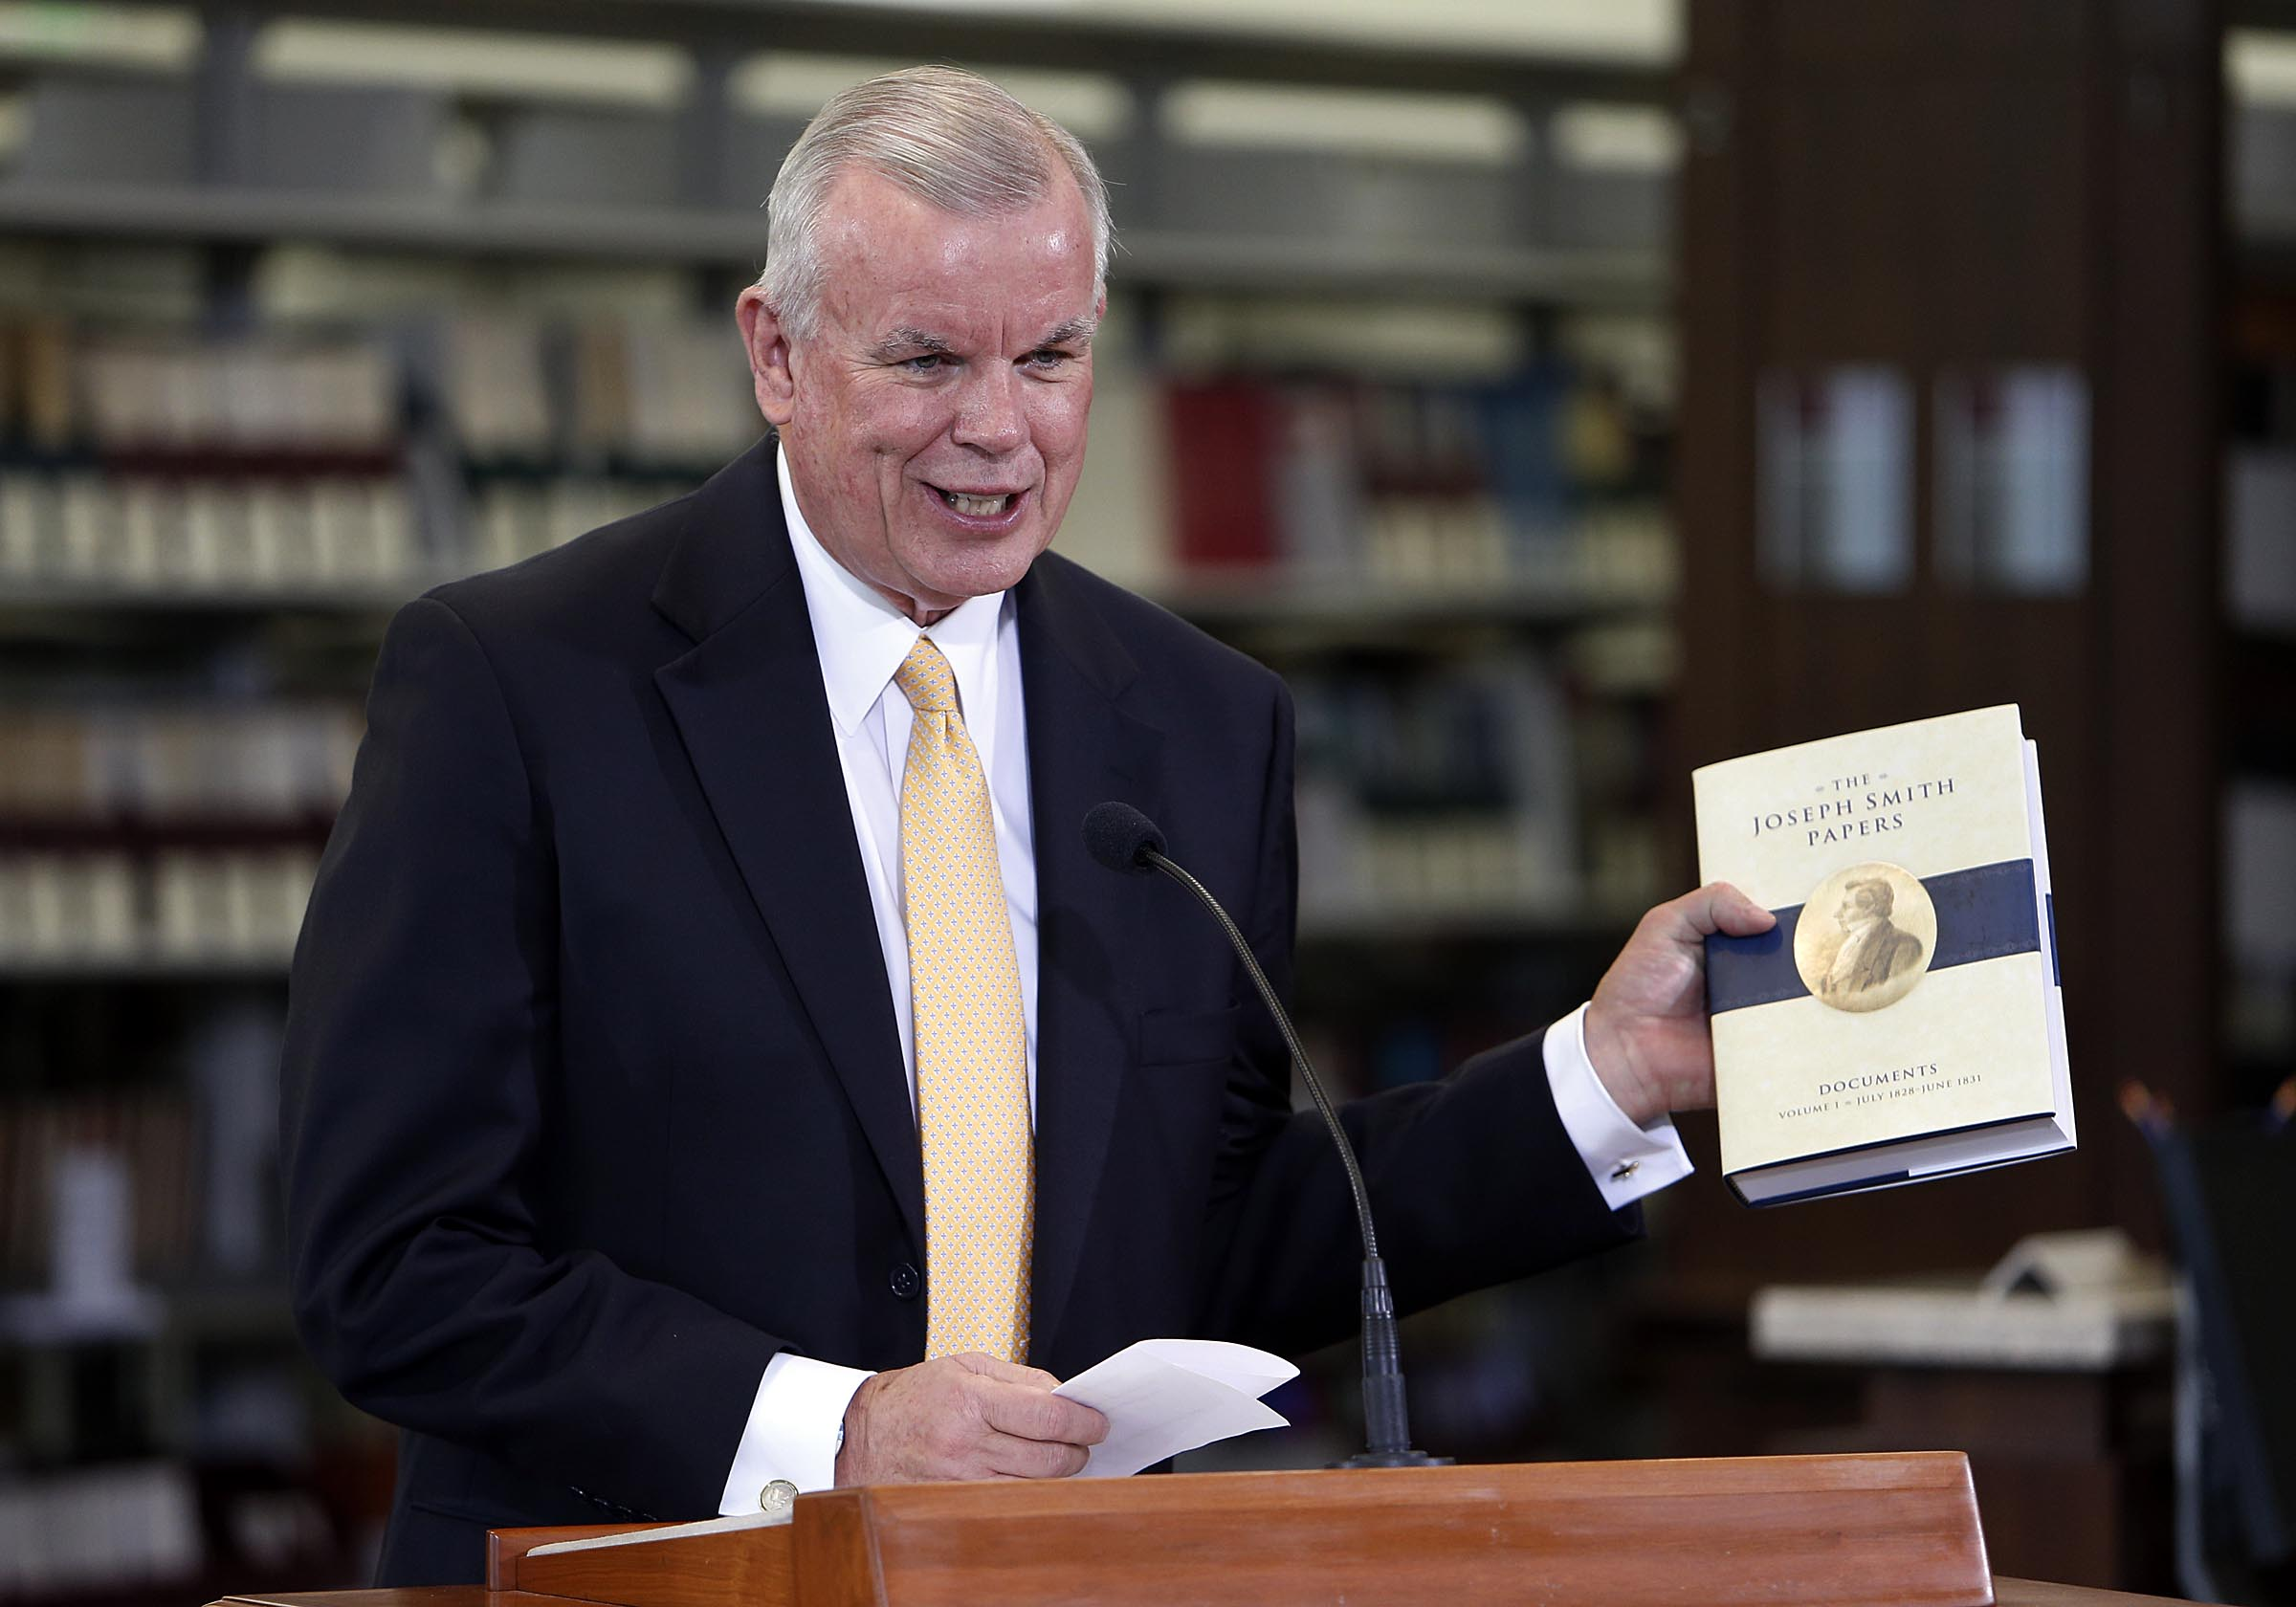 Elder Steven E. Snow, church historian and recorder, and executive director of the Church History Department, meets with the media to announce the release of the latest volume in the church's ongoing Joseph Smith Papers project in Salt Lake City, Wednesday, Sept. 4, 2013.